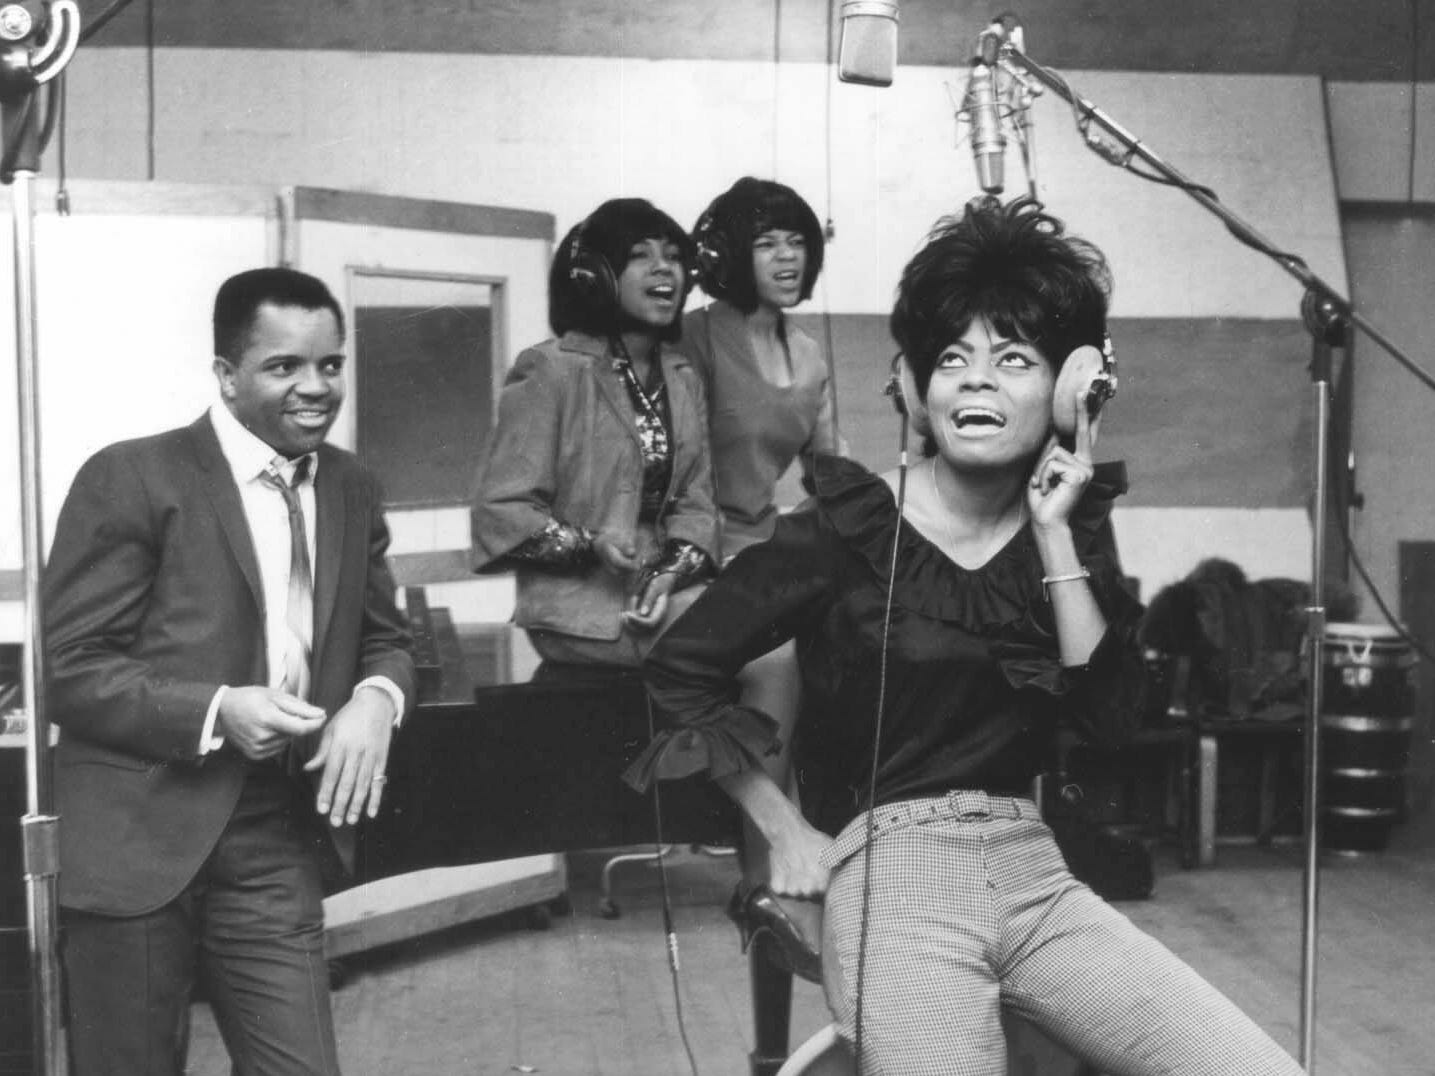 Berry Gordy Jr. listens to The Supremes — Mary Wilson, left, Florence Ballard and Diana Ross — lay down a track during a January 1965 recording session at Motown Records' Studio A, 2648 W. Grand Blvd. in Detroit. A copy of this photo is mounted on the wall of Studio A today for visitors to the Motown Museum.